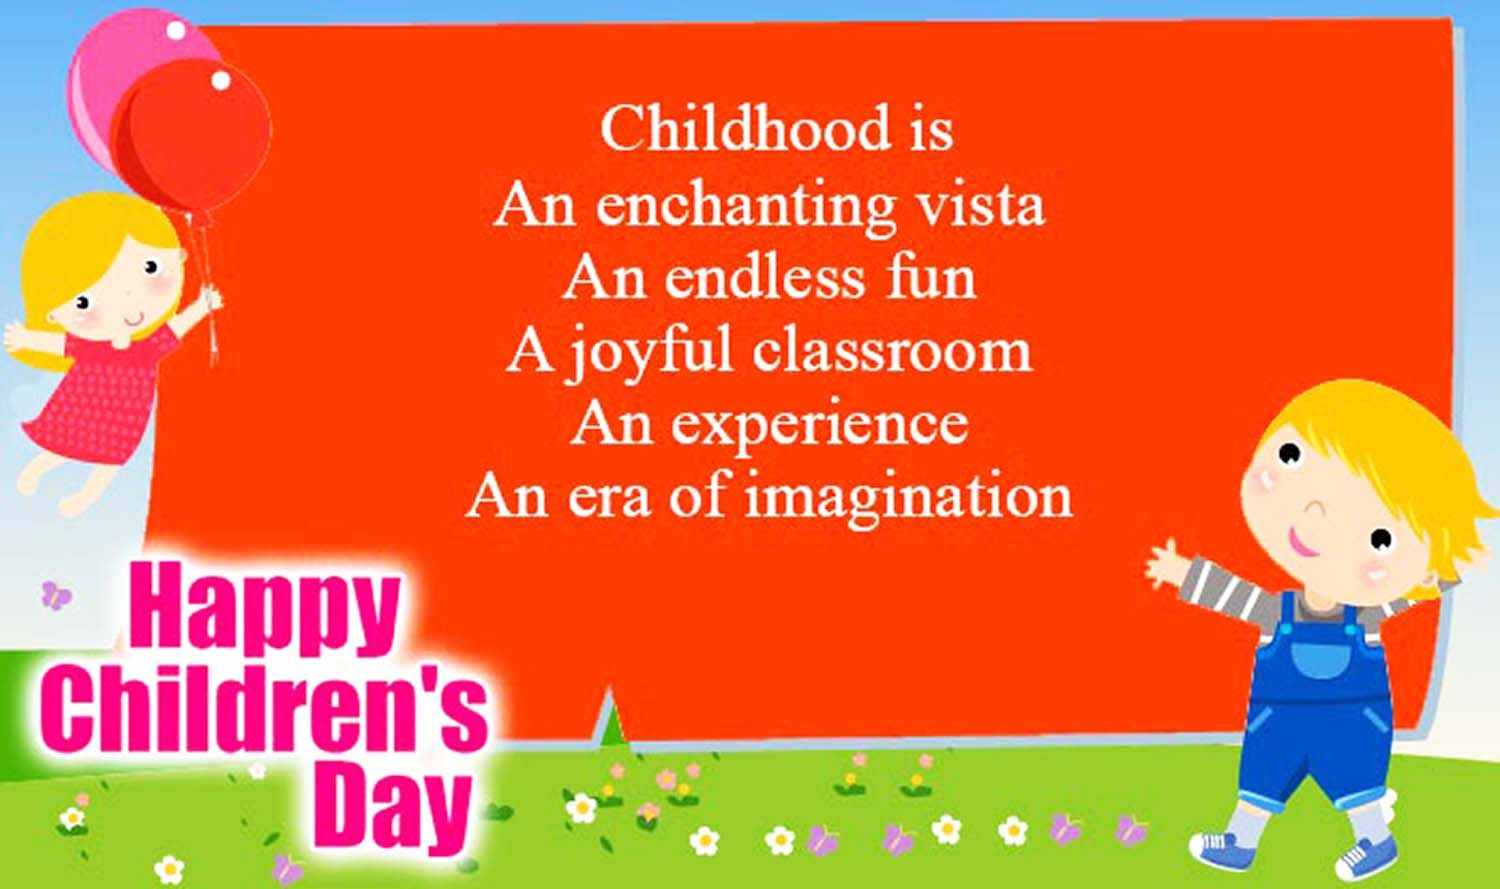 Happy Children's Day Quotes, Wishes and Small Thoughts